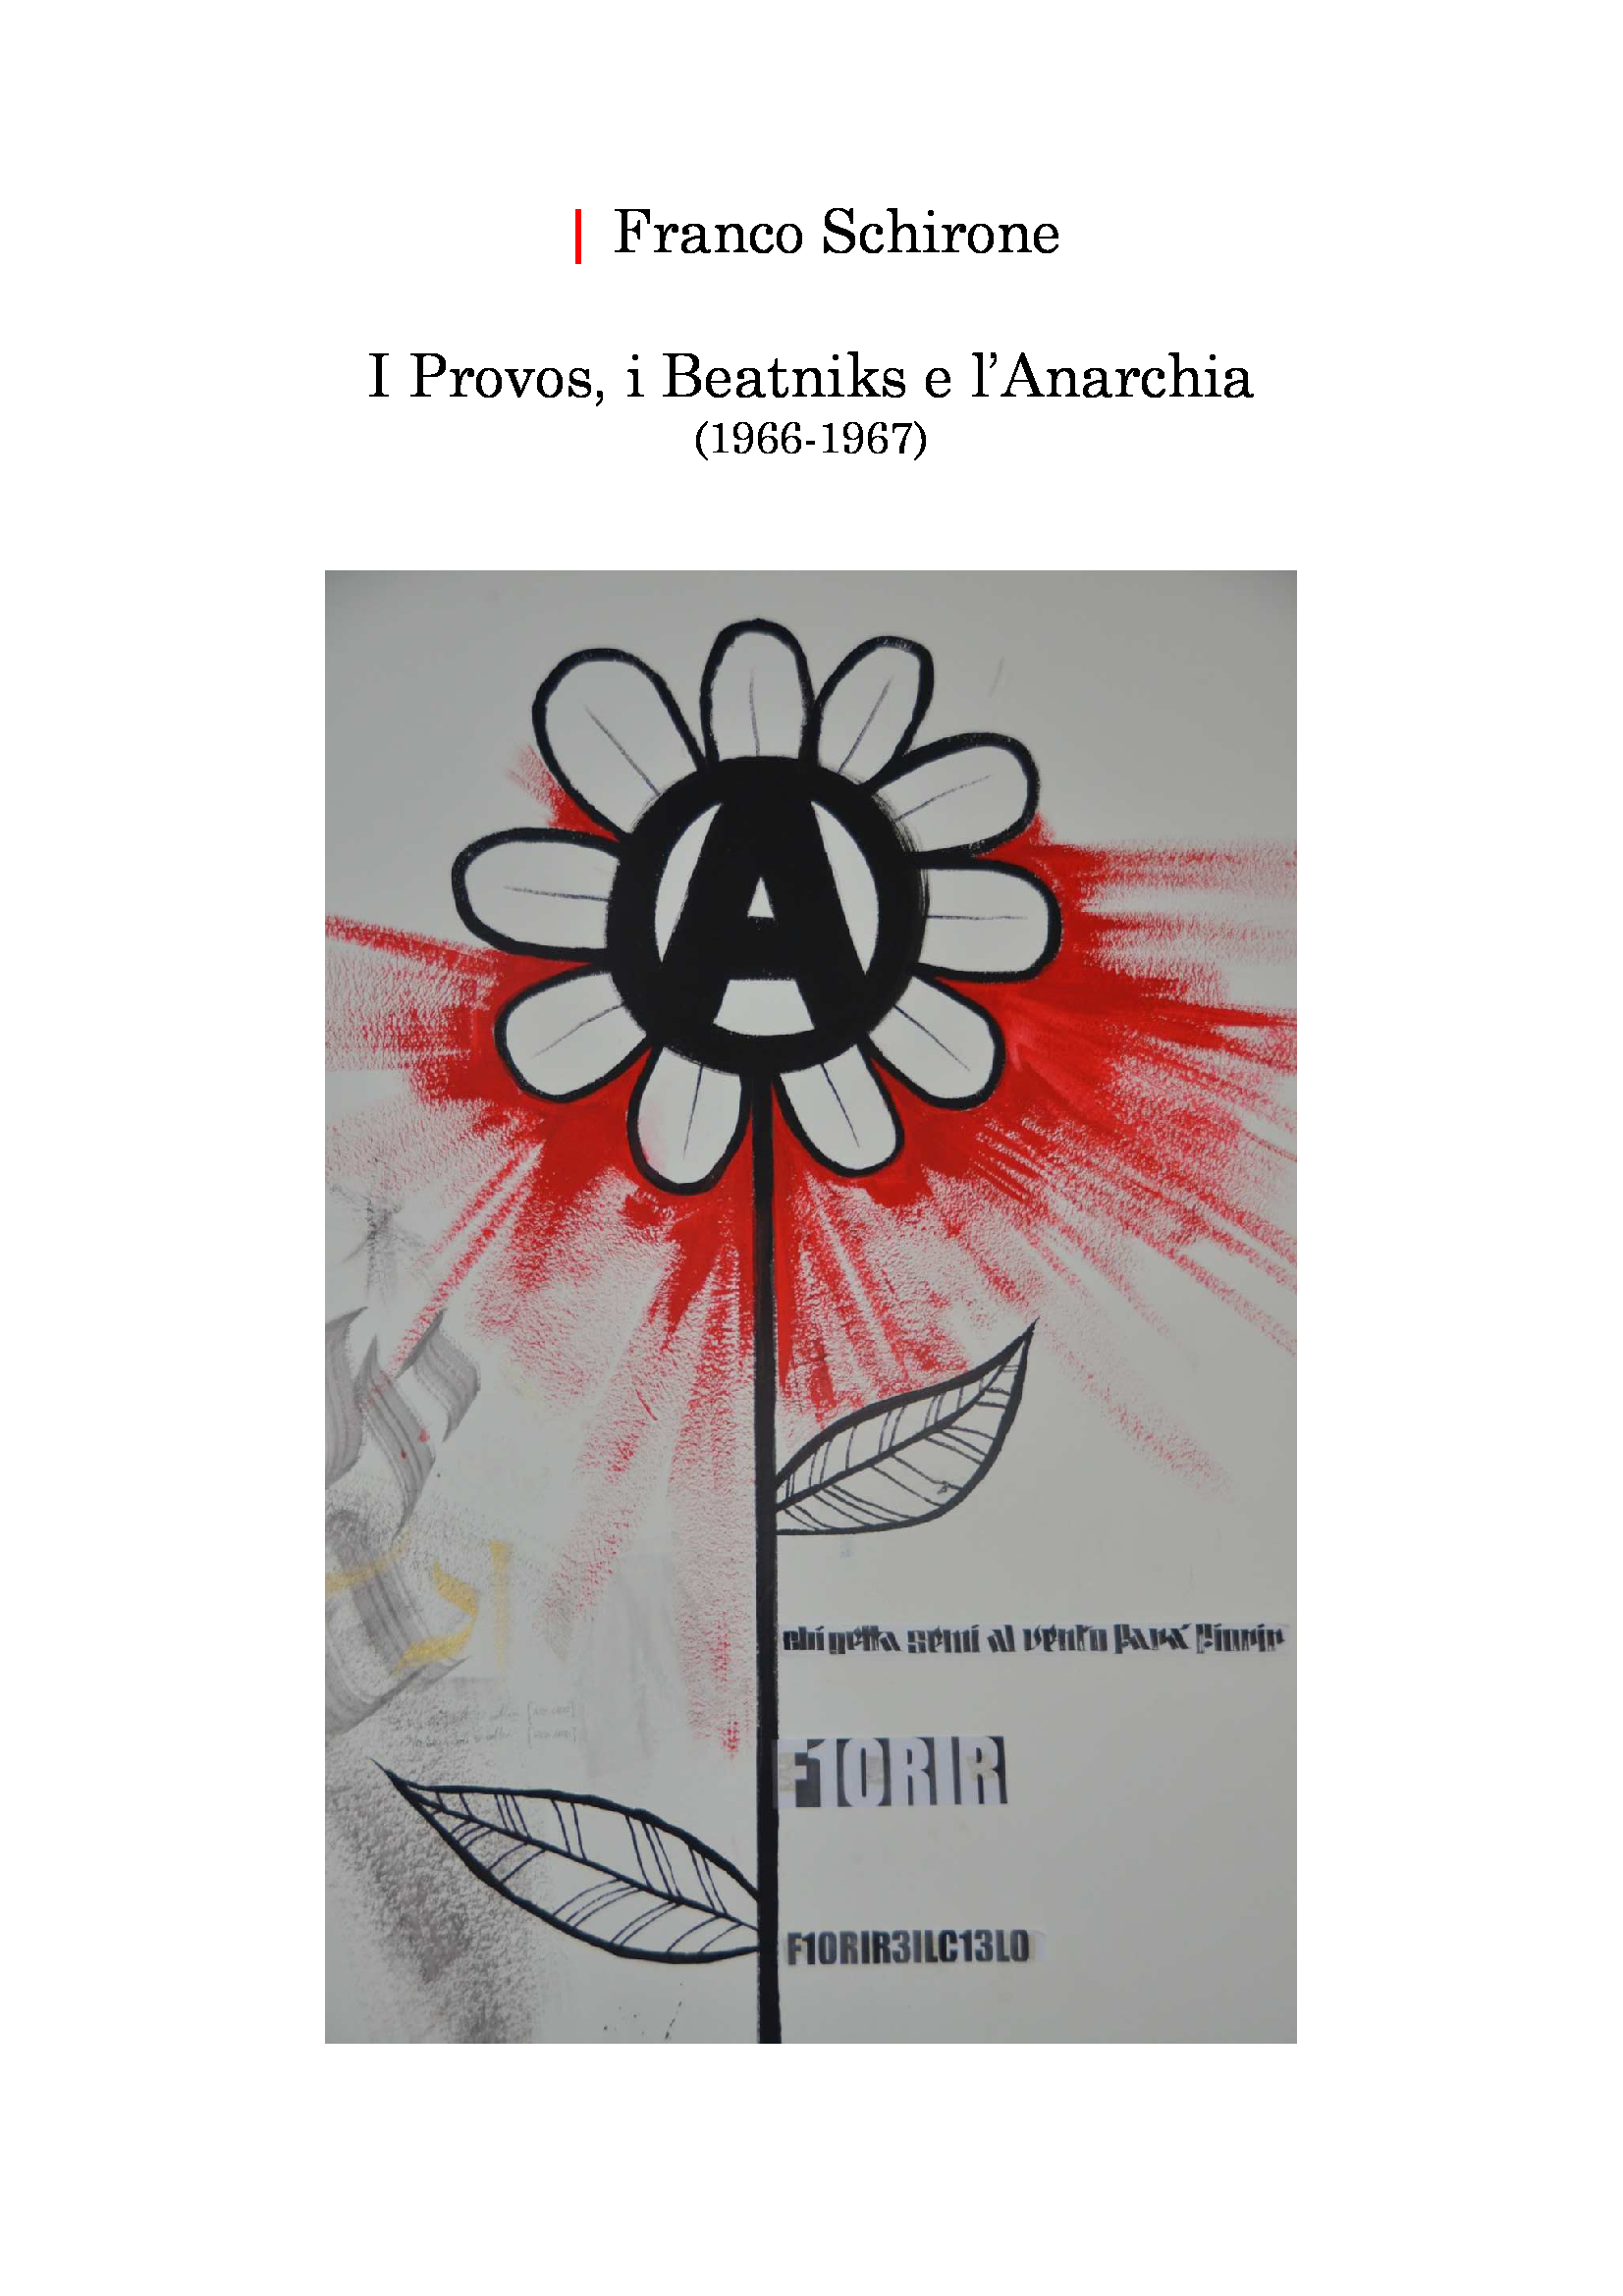 Provos, beatnik e anarchia